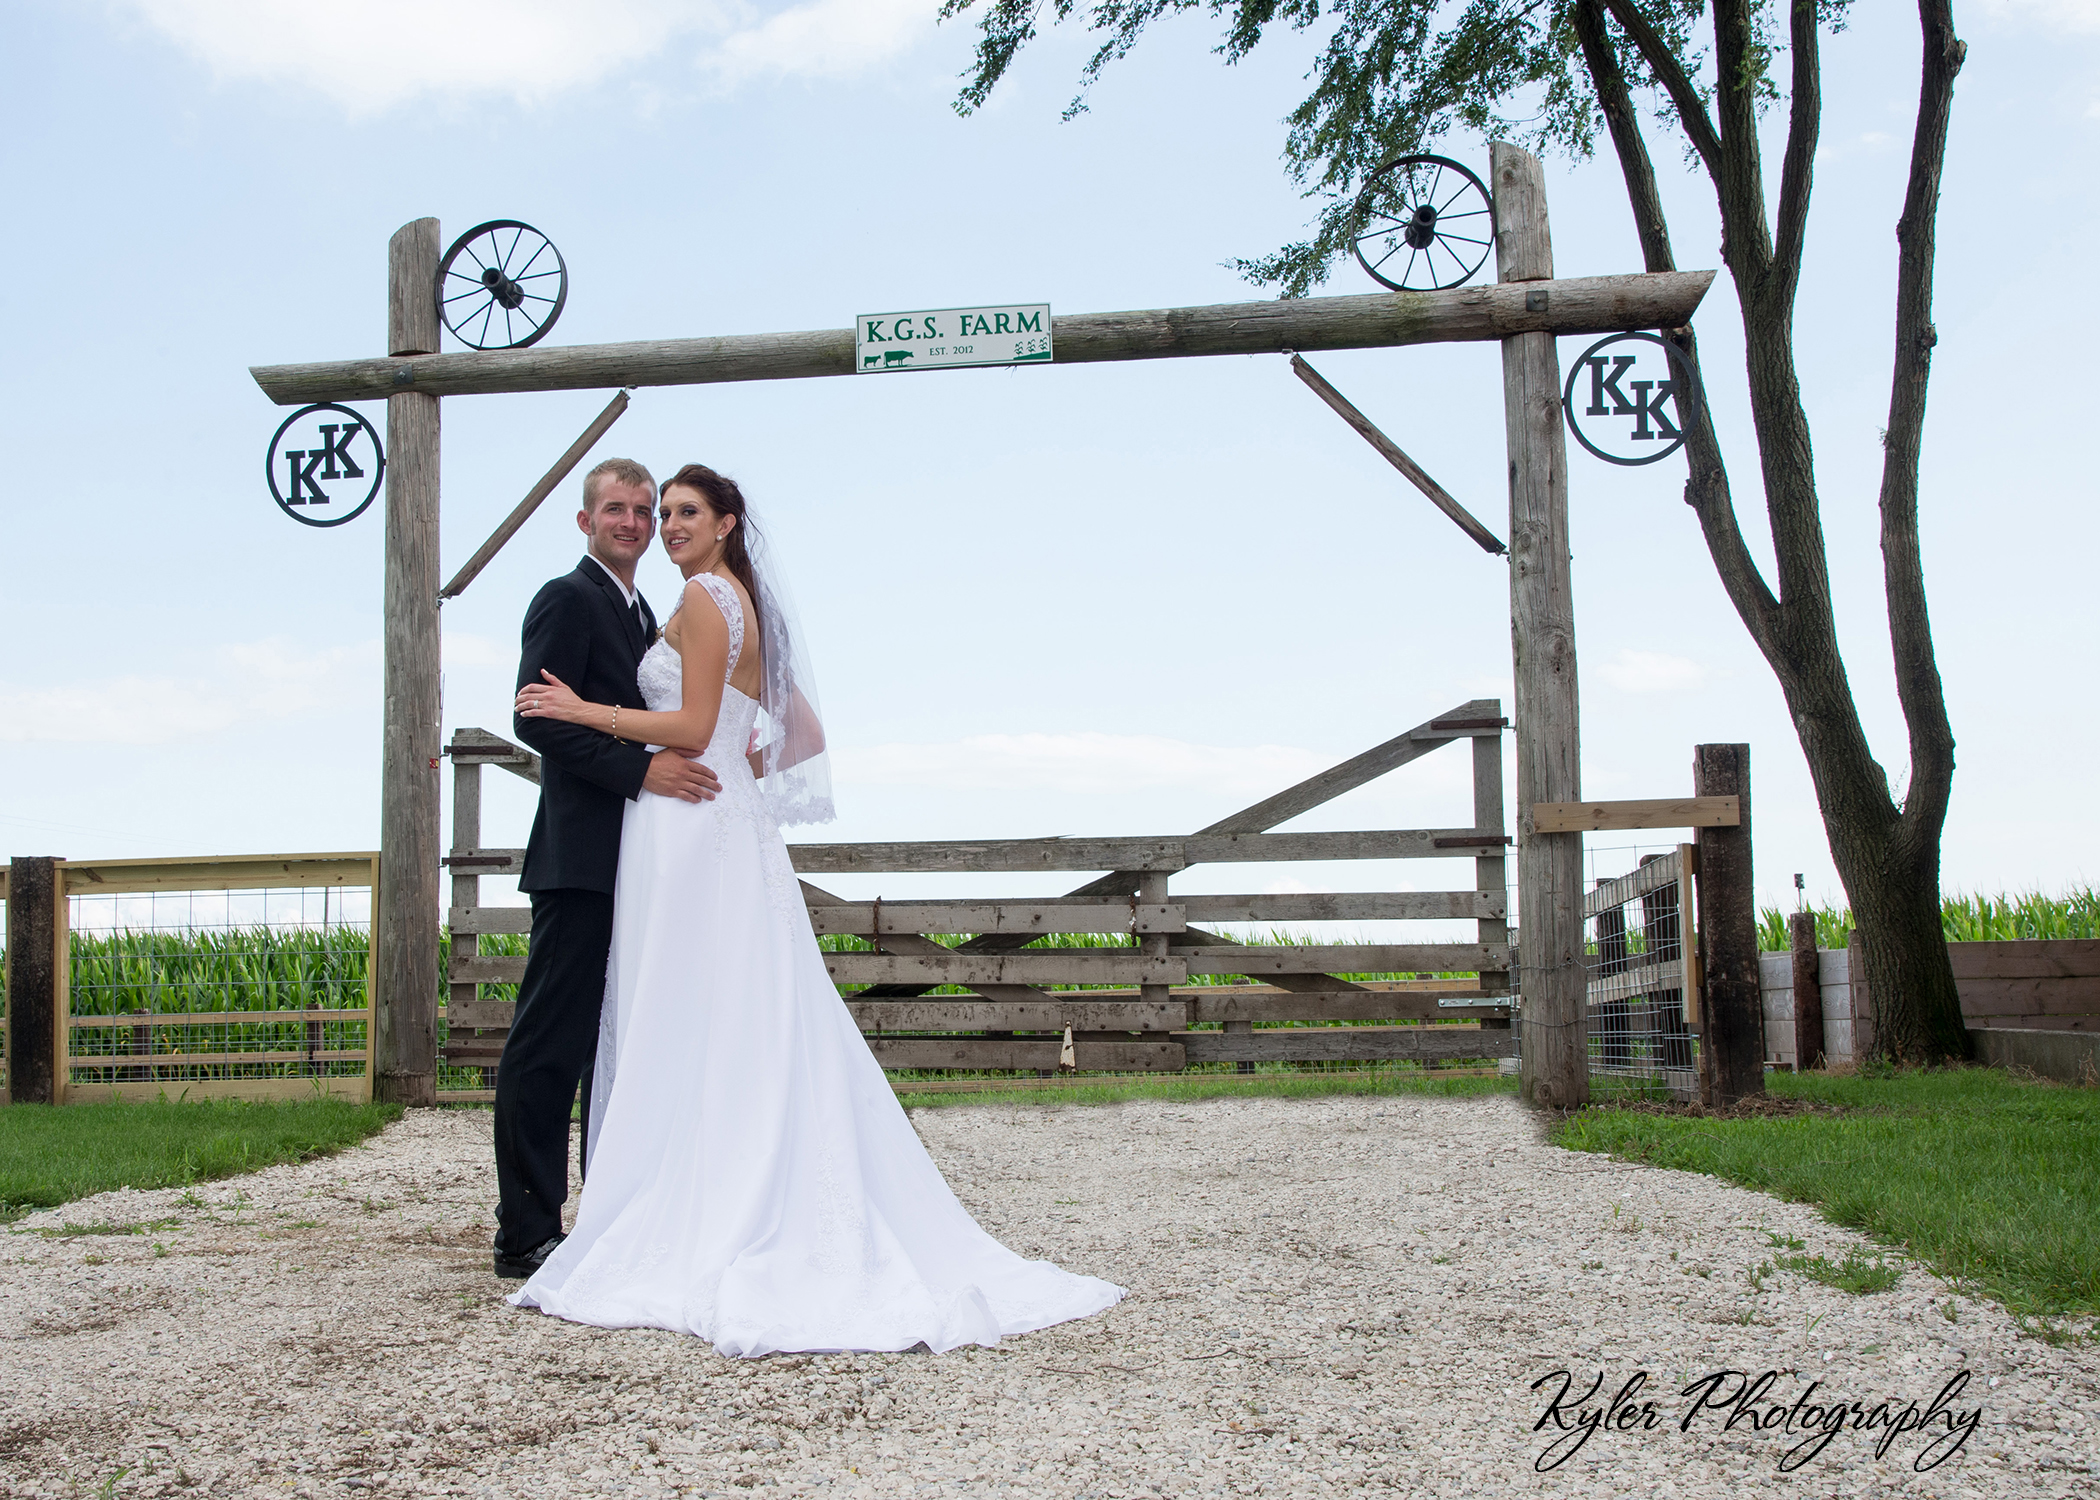 Wedding Gifts For Young Couples: Wedding Gift For Young Farmers In Illinois